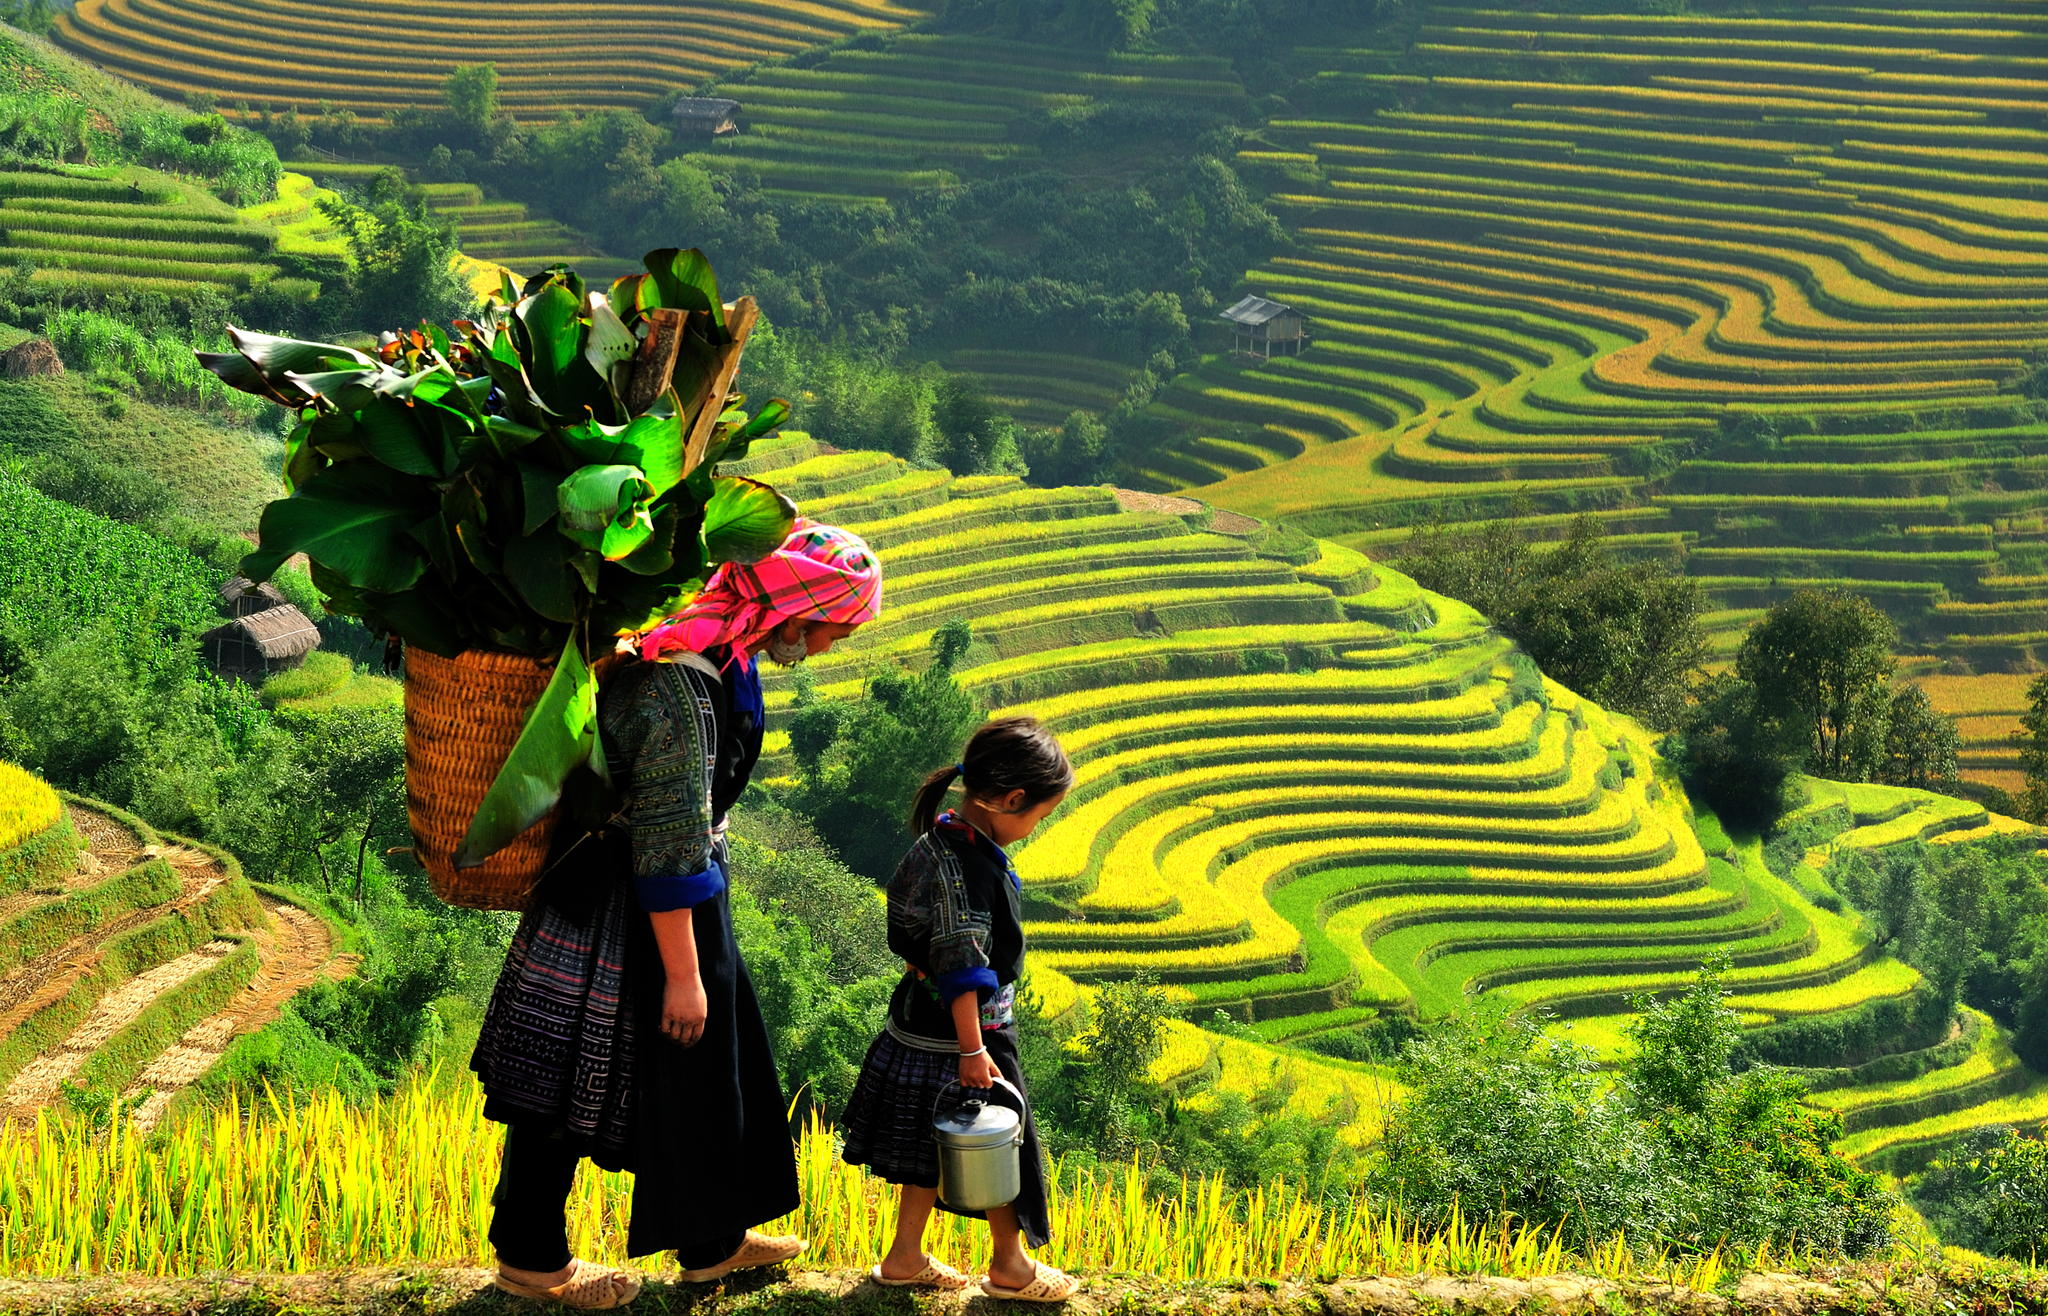 Sapa trekking 4 nights 3 days by train